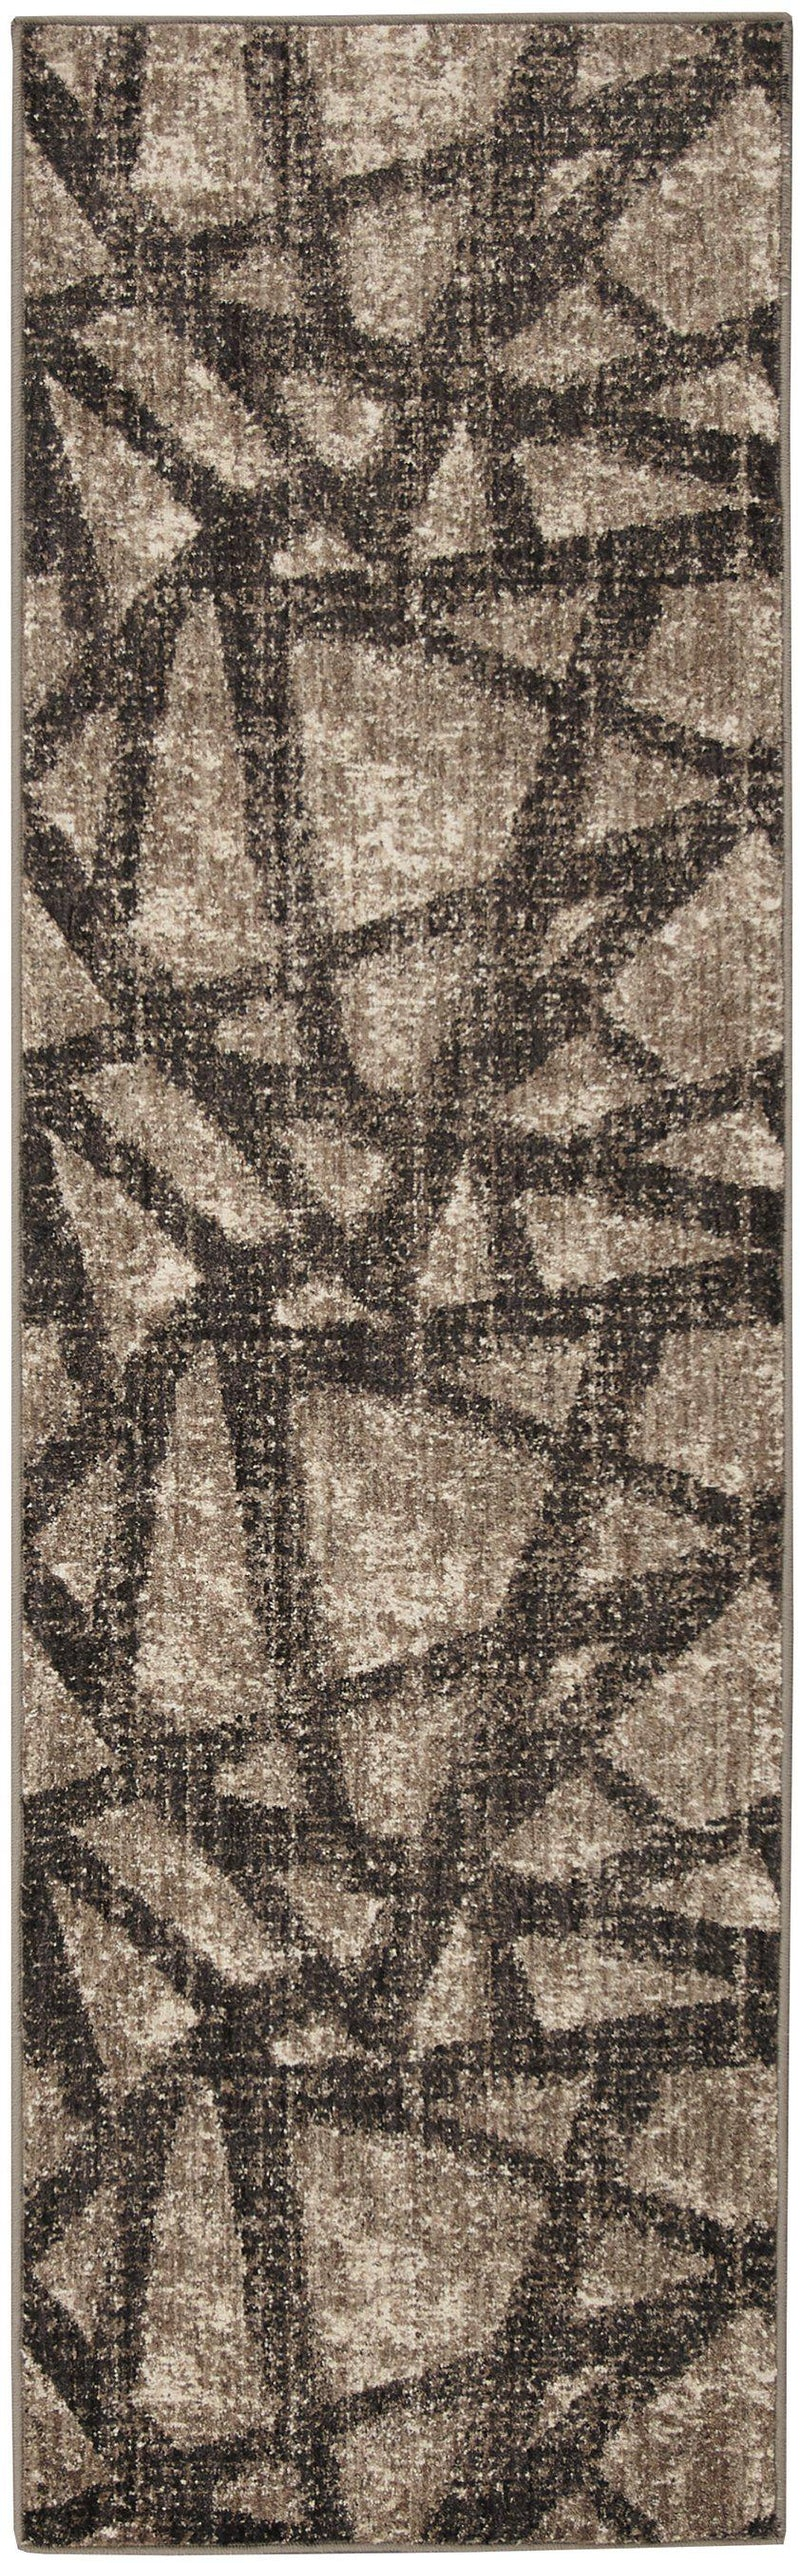 "Expressions Solstice Onyx by Scott Living Area Rug-Area Rug-Scott Living-5' 3""x7' 10""-The Rug Truck"